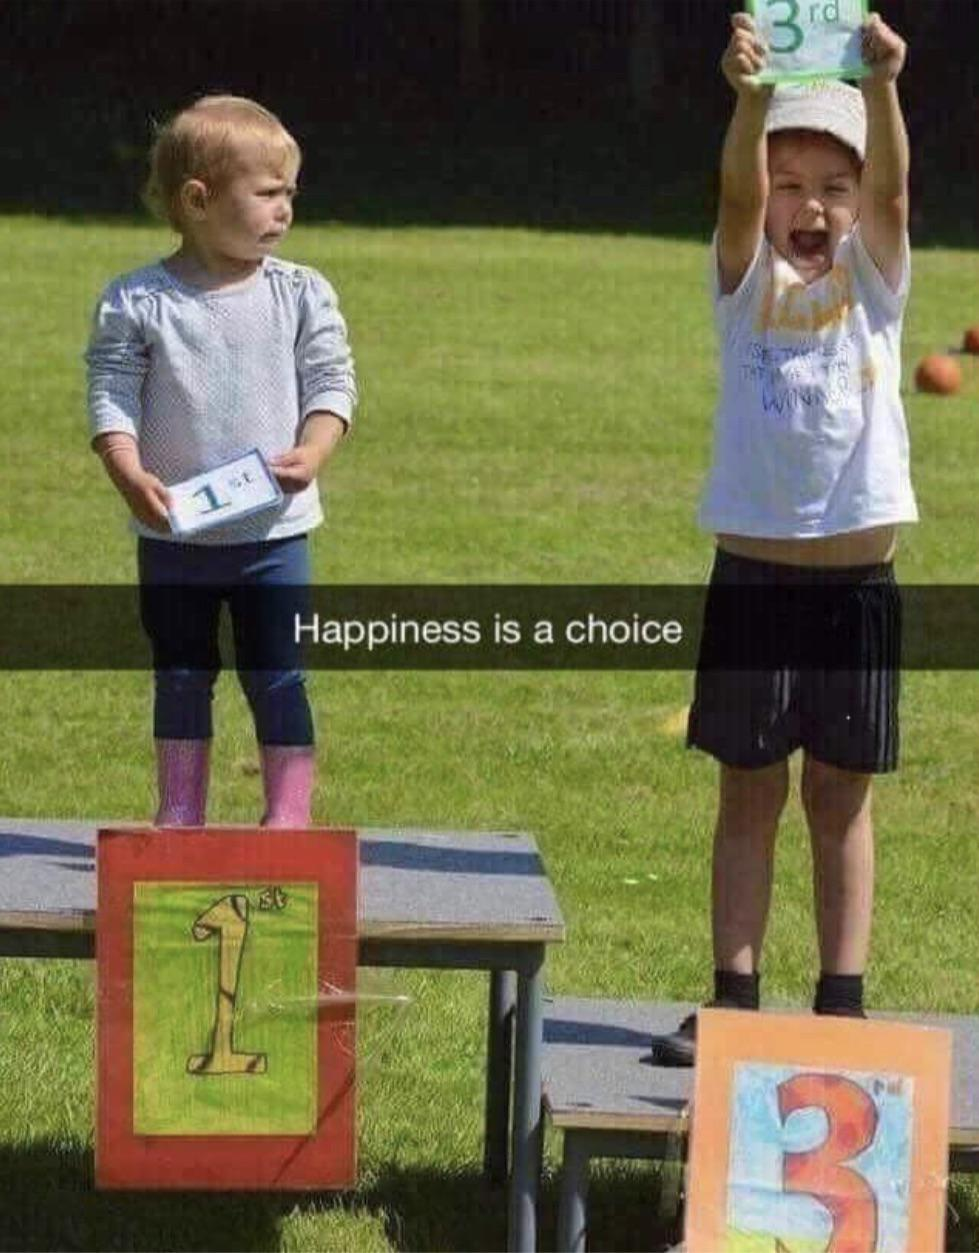 [image] Happiness is a choice